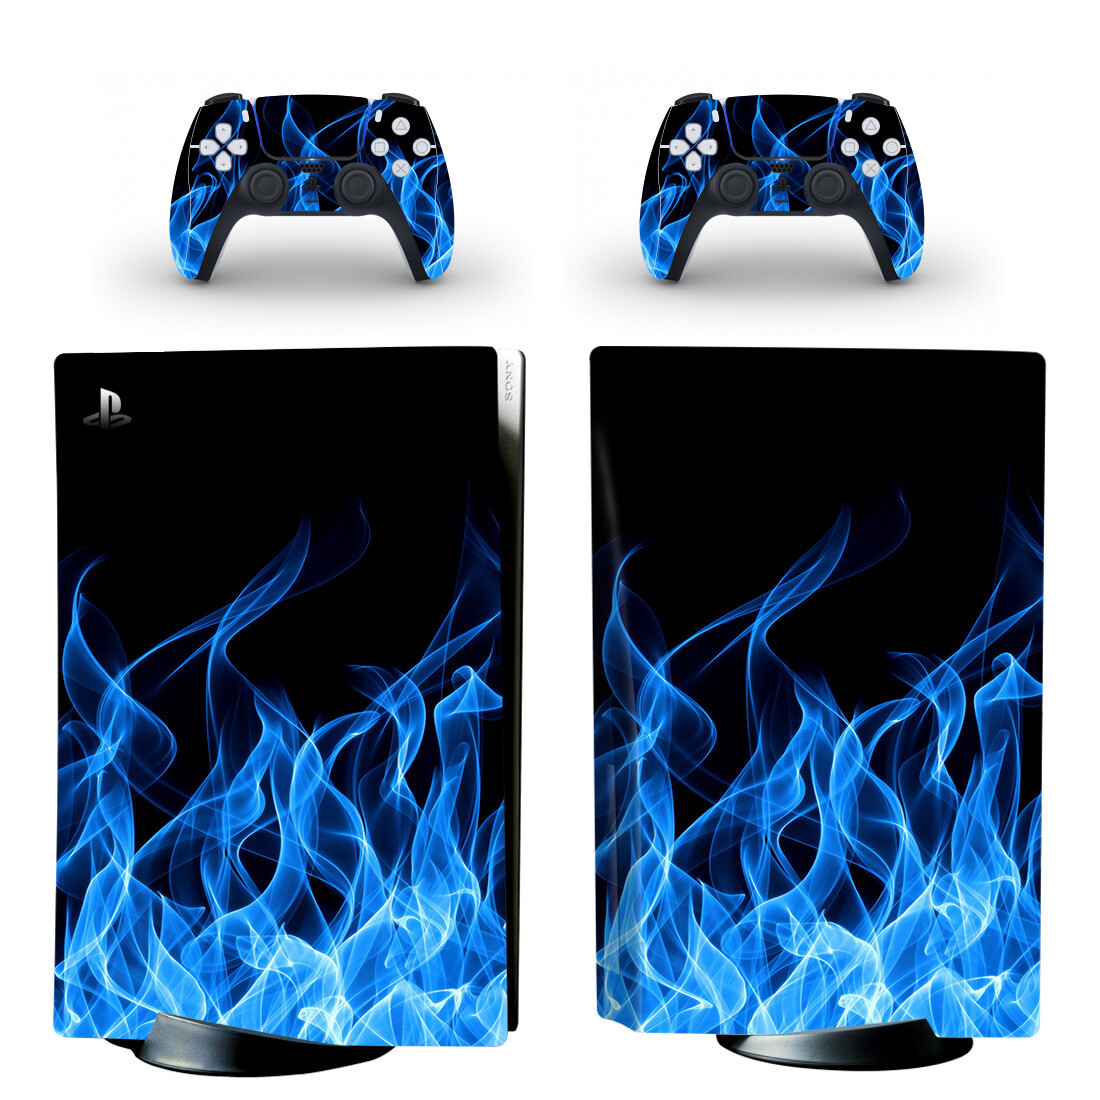 Blue Flame Wallpaper Skin Sticker Decal For PlayStation 5